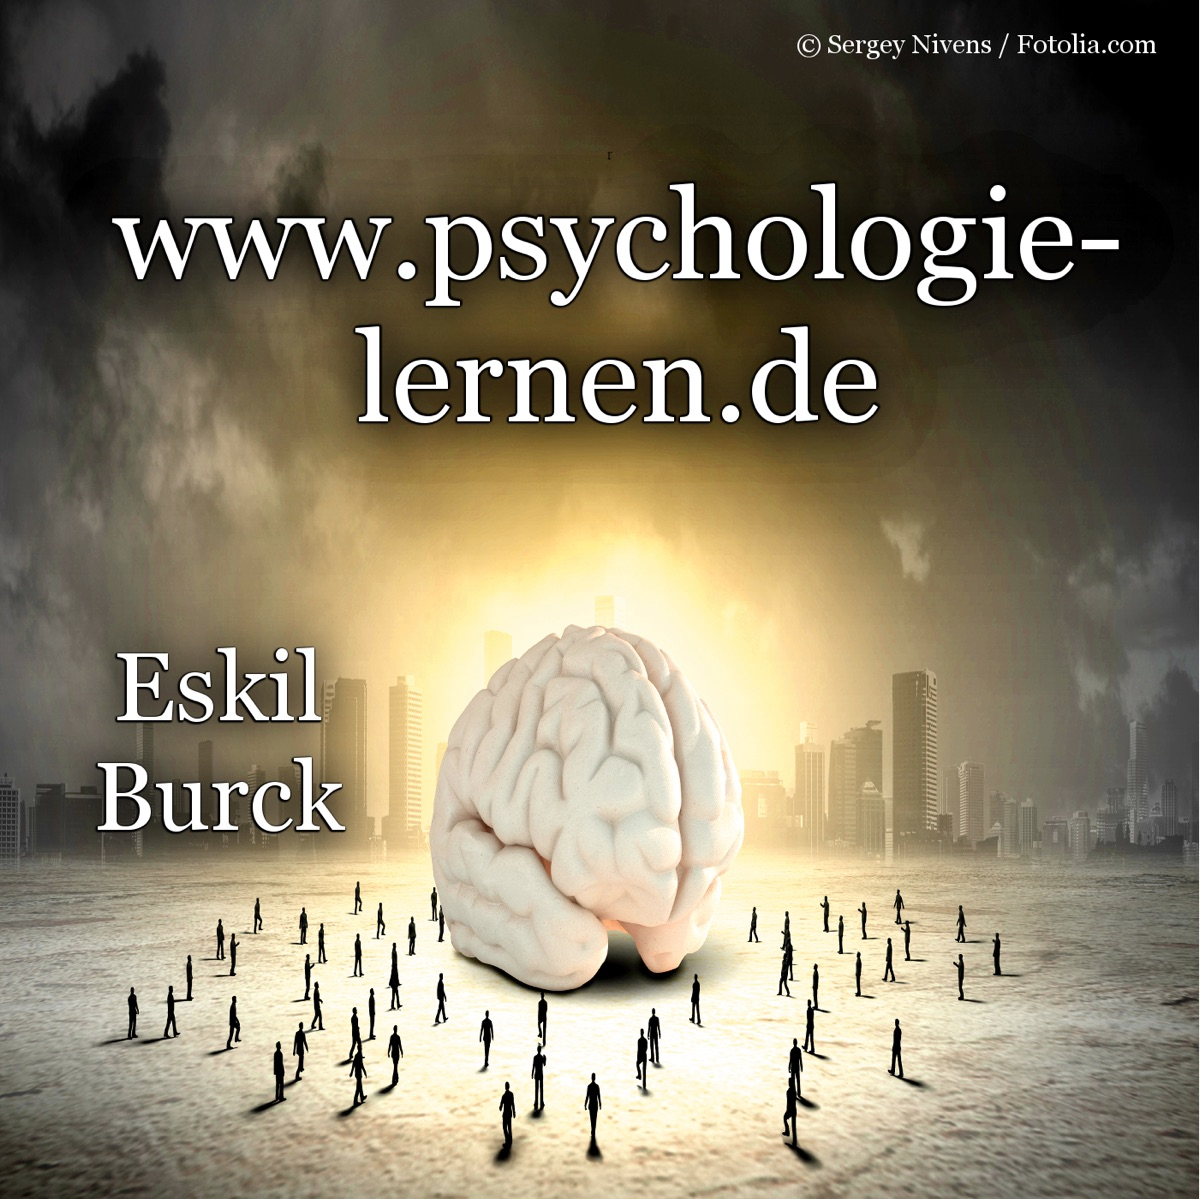 (204) Die paradoxe Intention in der Psychotherapie